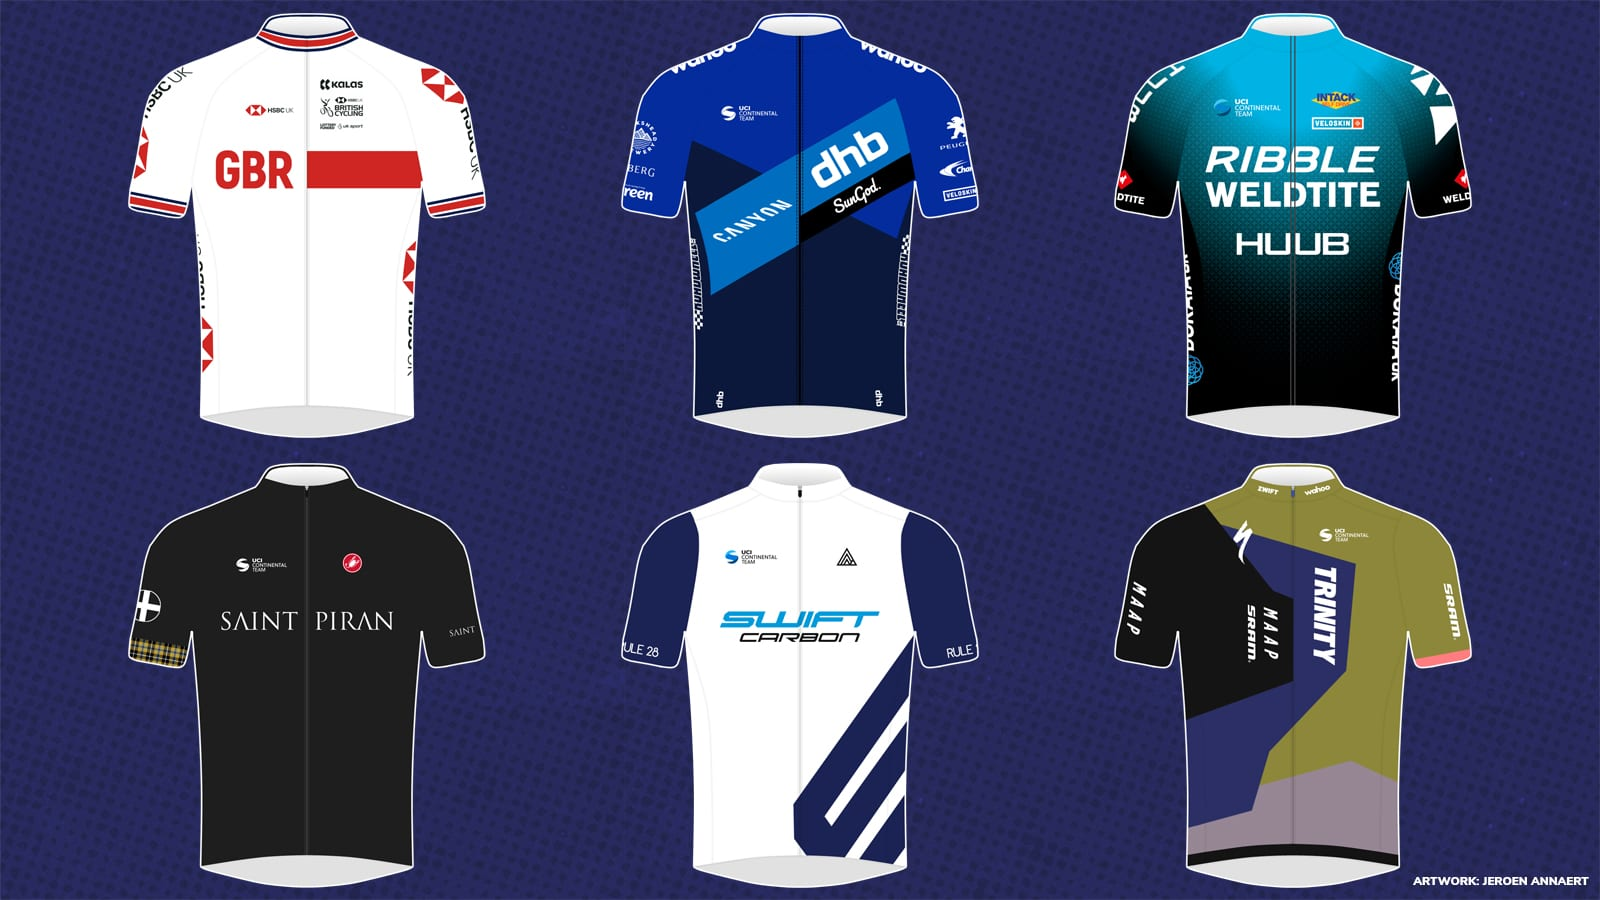 Tour of Britain teams